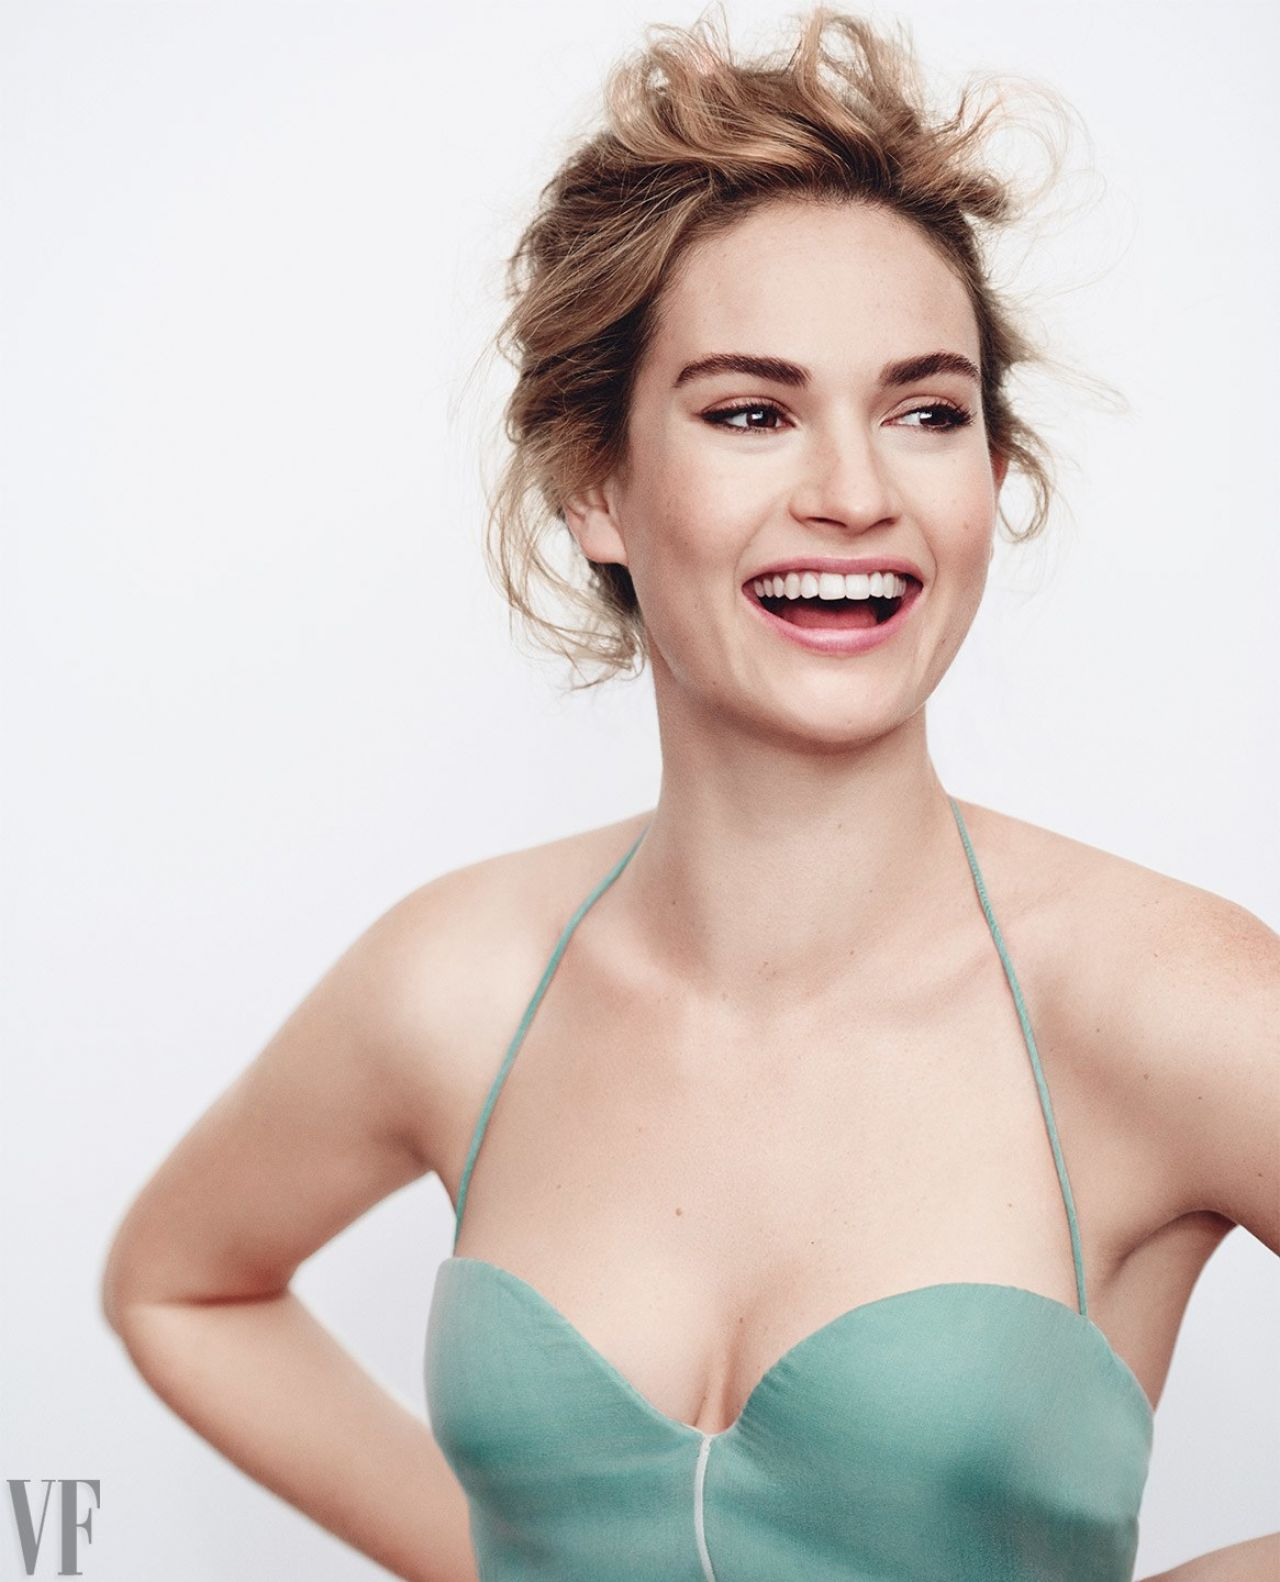 http://celebmafia.com/wp-content/uploads/2017/12/lily-james-photoshoot-for-vanity-fair-november-2017-1.jpg